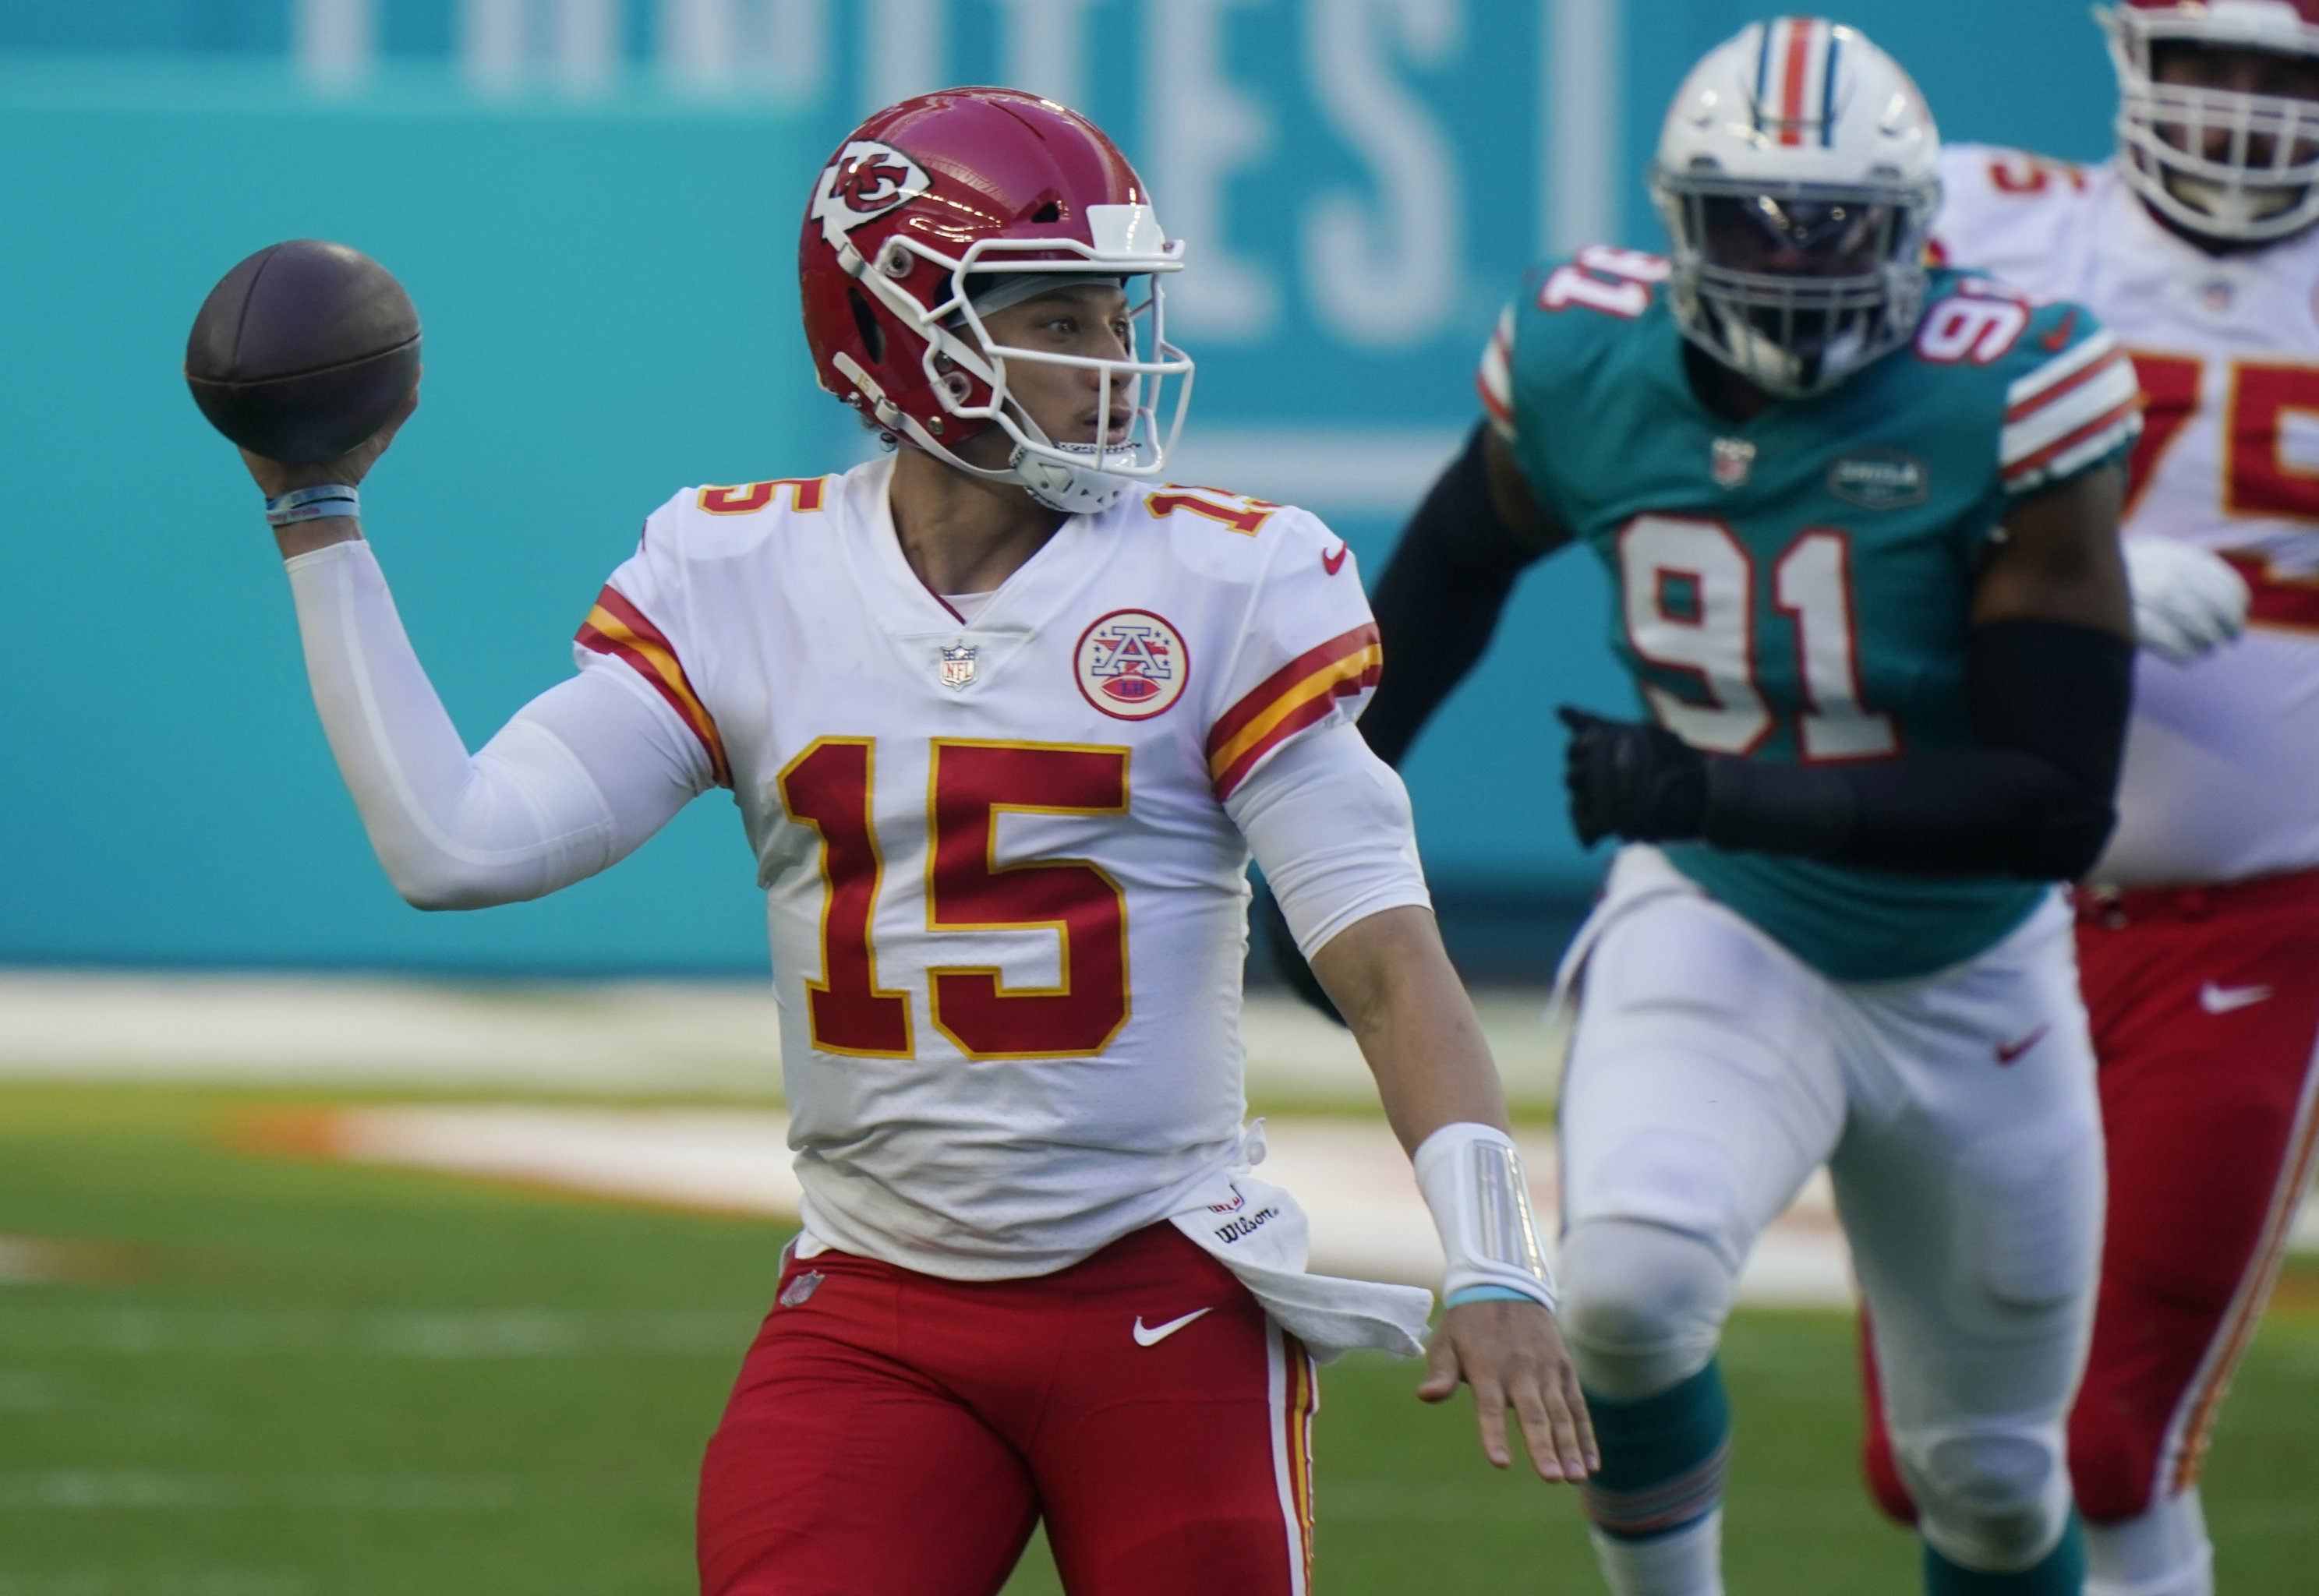 Nfl Playoff Scenarios 2020 21 Afc Nfc Bracket Picture And Pre Week 15 Odds Bleacher Report Latest News Videos And Highlights